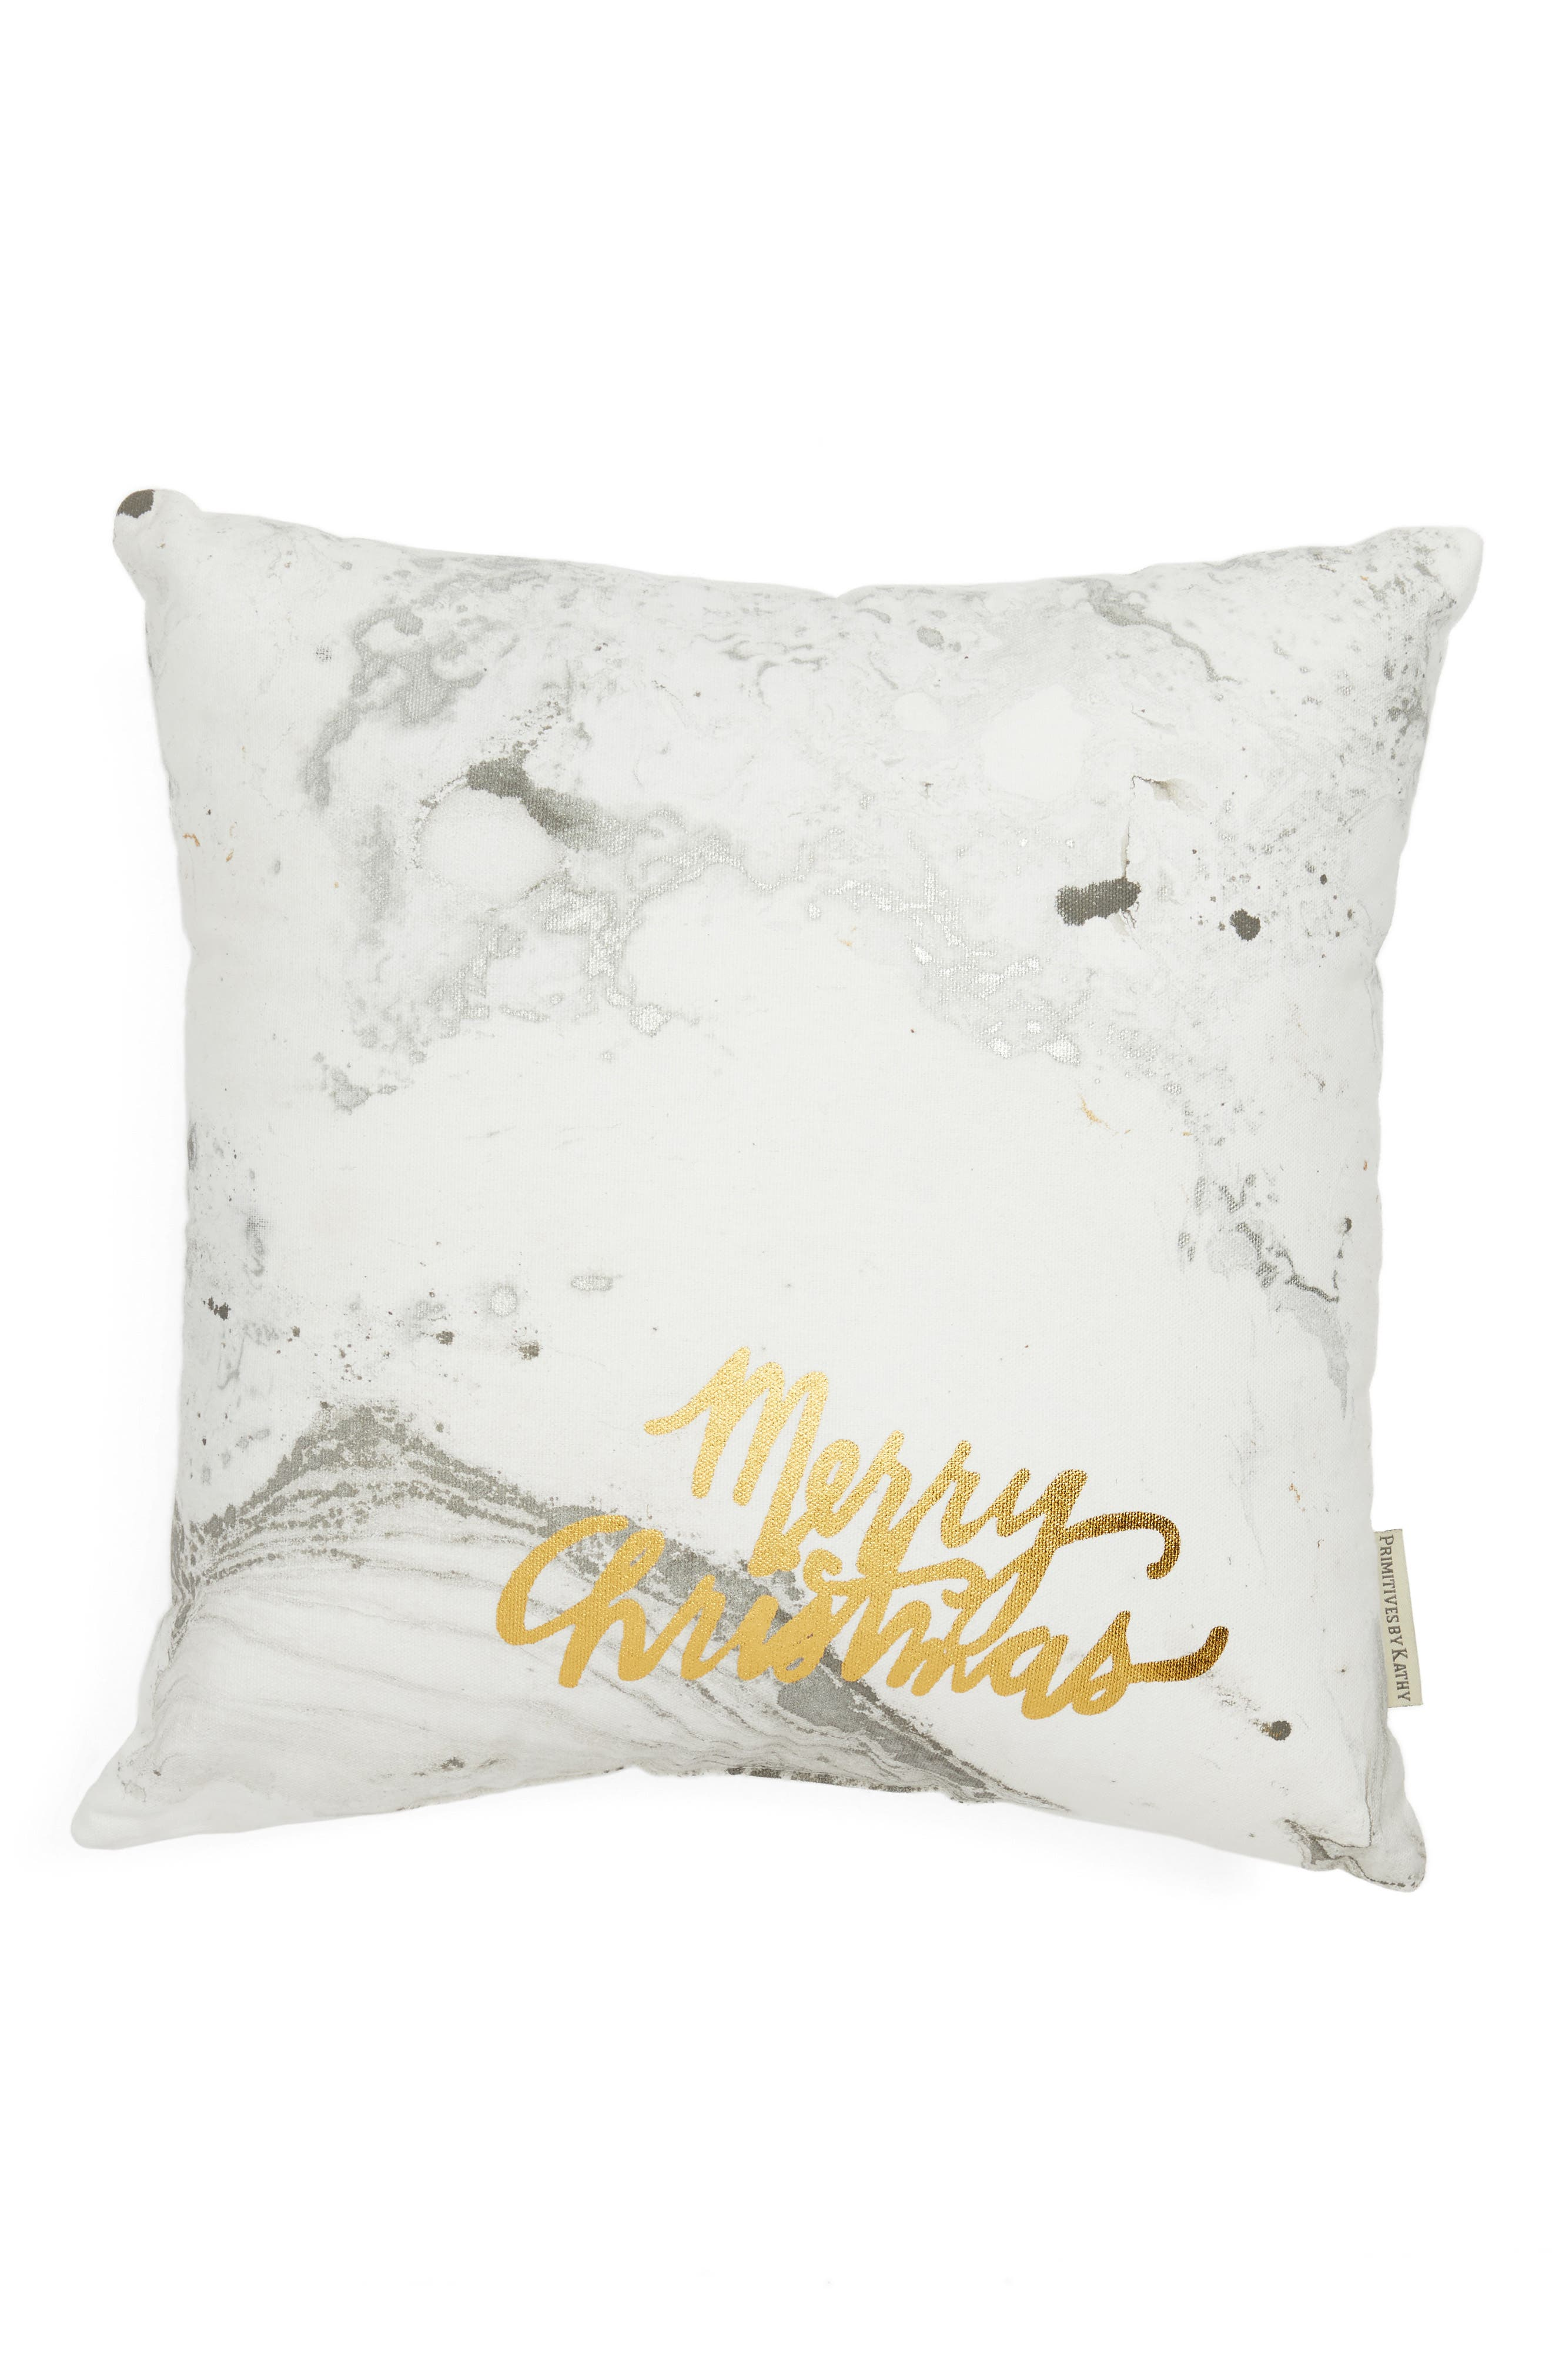 Merry Christmas Accent Pillow,                         Main,                         color, 020